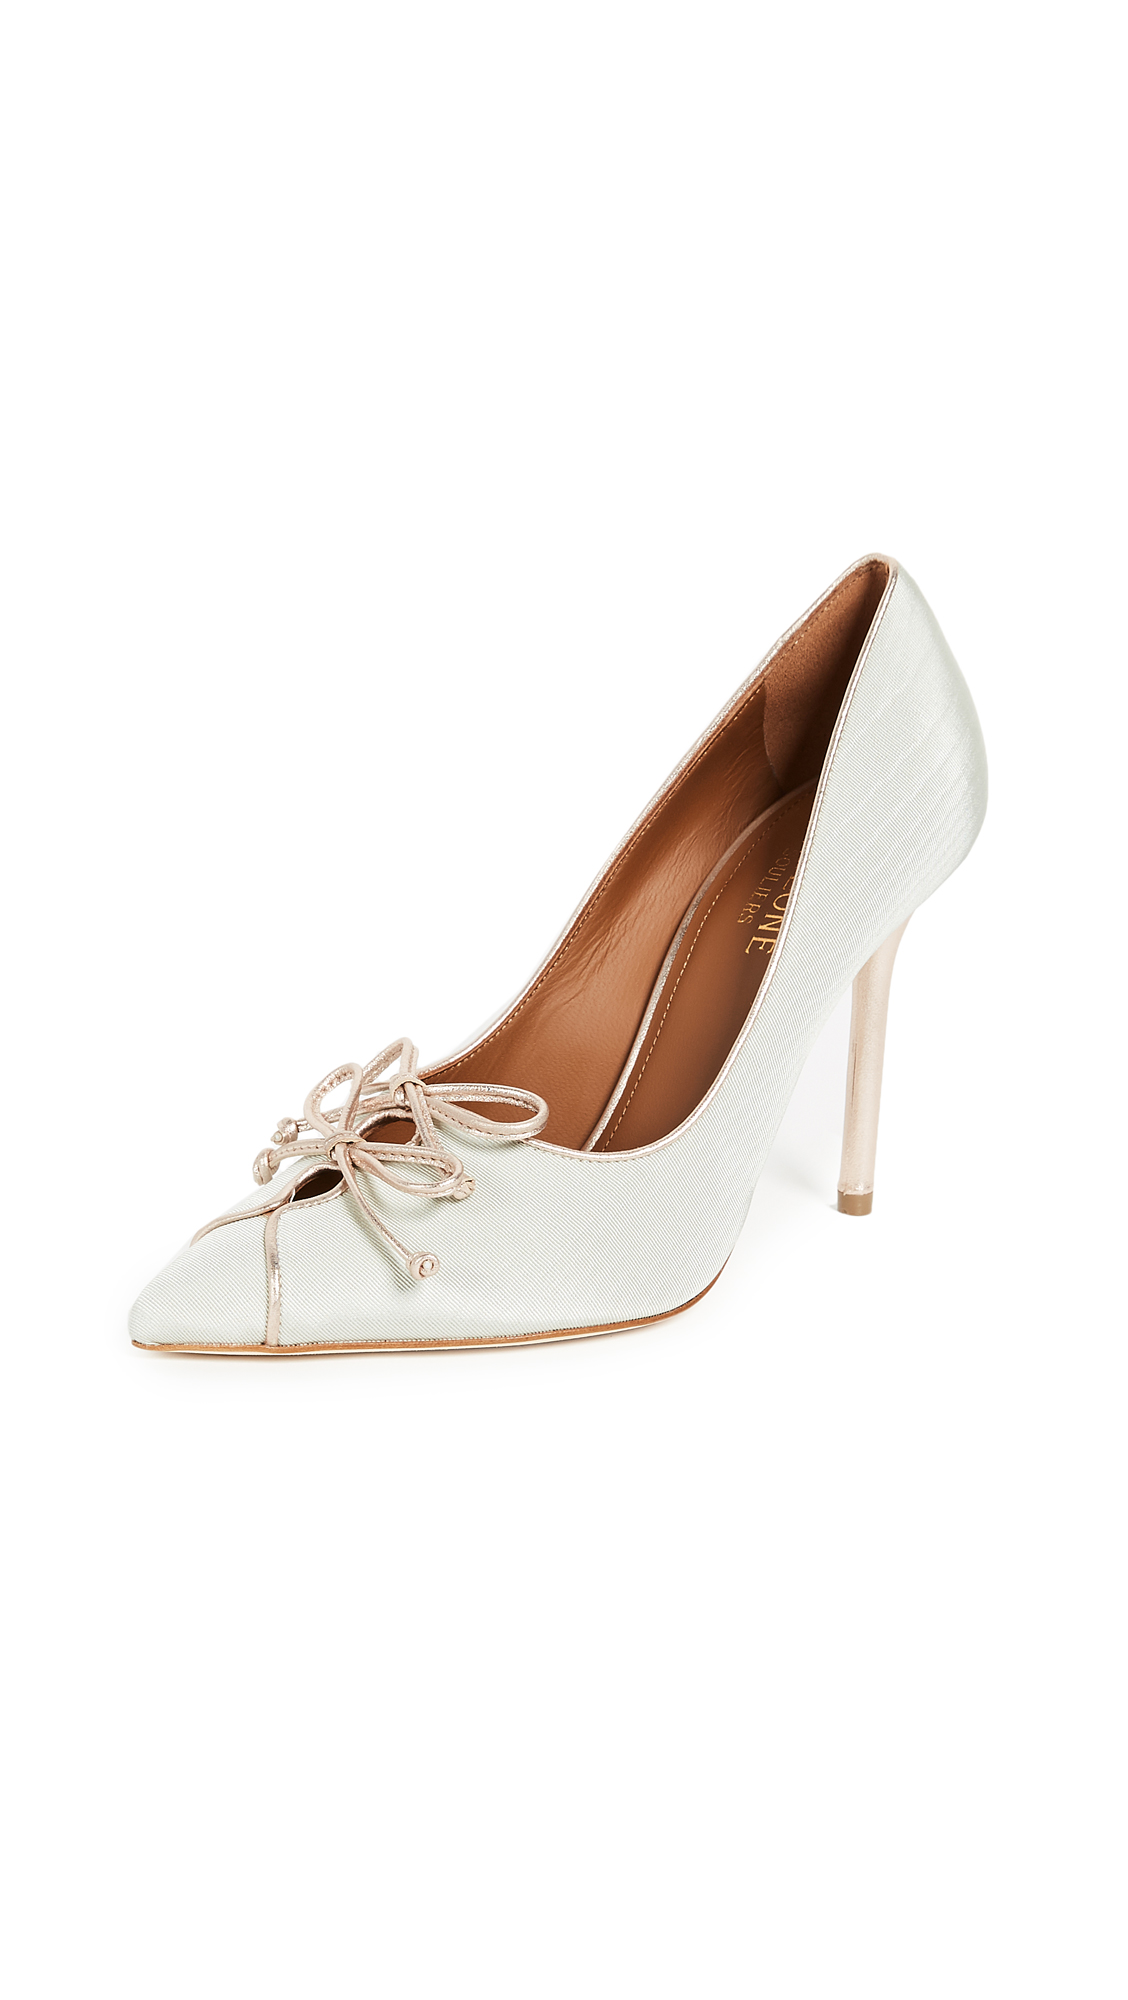 Malone Souliers Vanessa Pumps - Ice